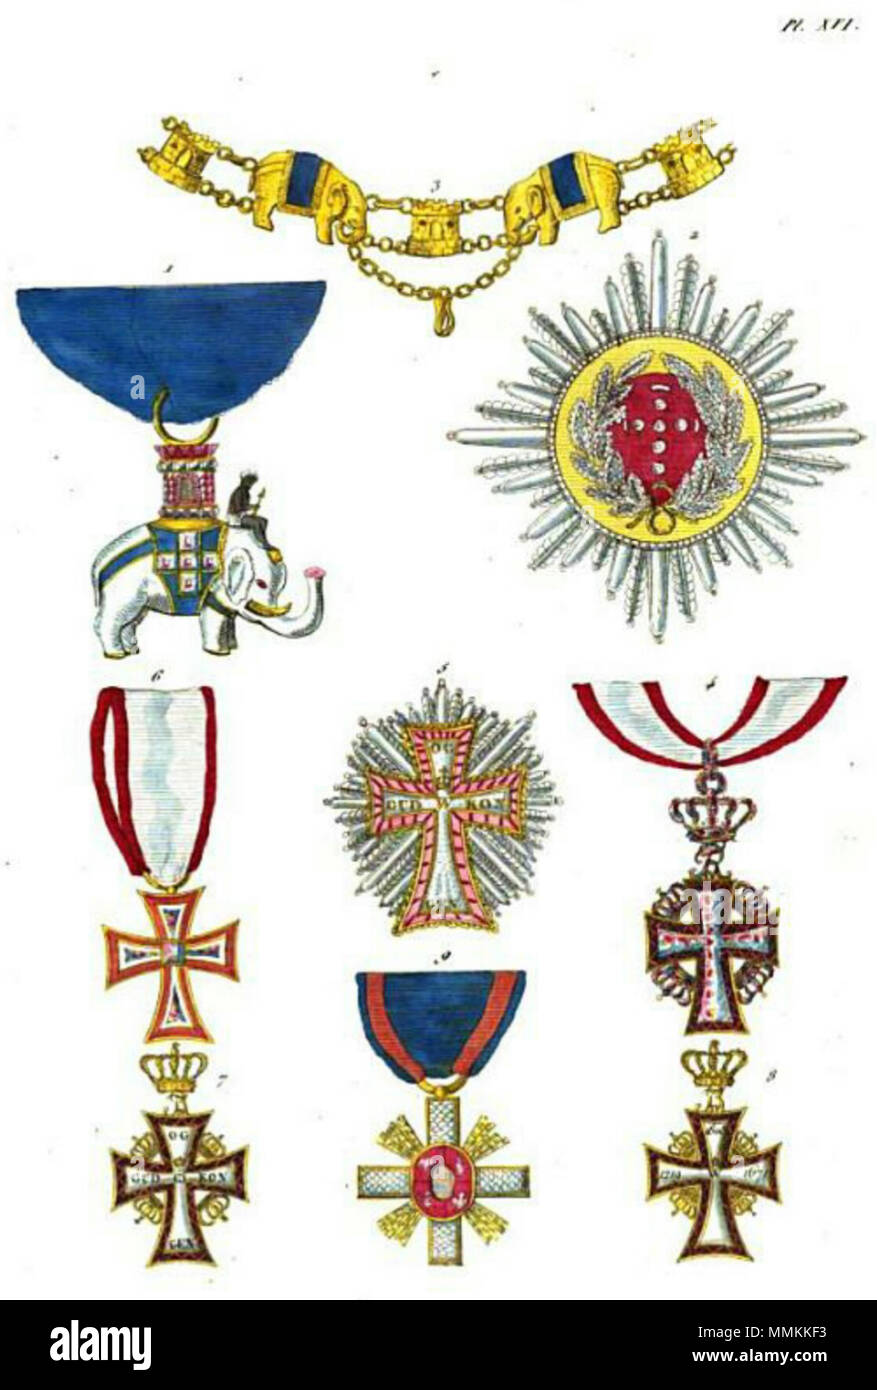 Français : Collection historique des ordres de chevalerie civils et militaires... English: Collection of historical orders of chivalry civil and military...: 1. Order of Elephant, badge (Denmark) 2. Order of Elephant, star (Denmark) 3. Order of Elephant, collar (Denmark) 4. Order of Dannebrog, badge 1st class (Denmark) 5. Order of Dannebrog, star (Denmark) 6. Order of Dannebrog, badge 2nd class with diamonds (Denmark) 7. Order of Dannebrog, badge 4th class obverse (Denmark) 8. Order of Dannebrog, badge 4th class reverse (Denmark) 9. Order of Fidelity or Ordre de l'Union Parfaite (Denmark) . 18 - Stock Image